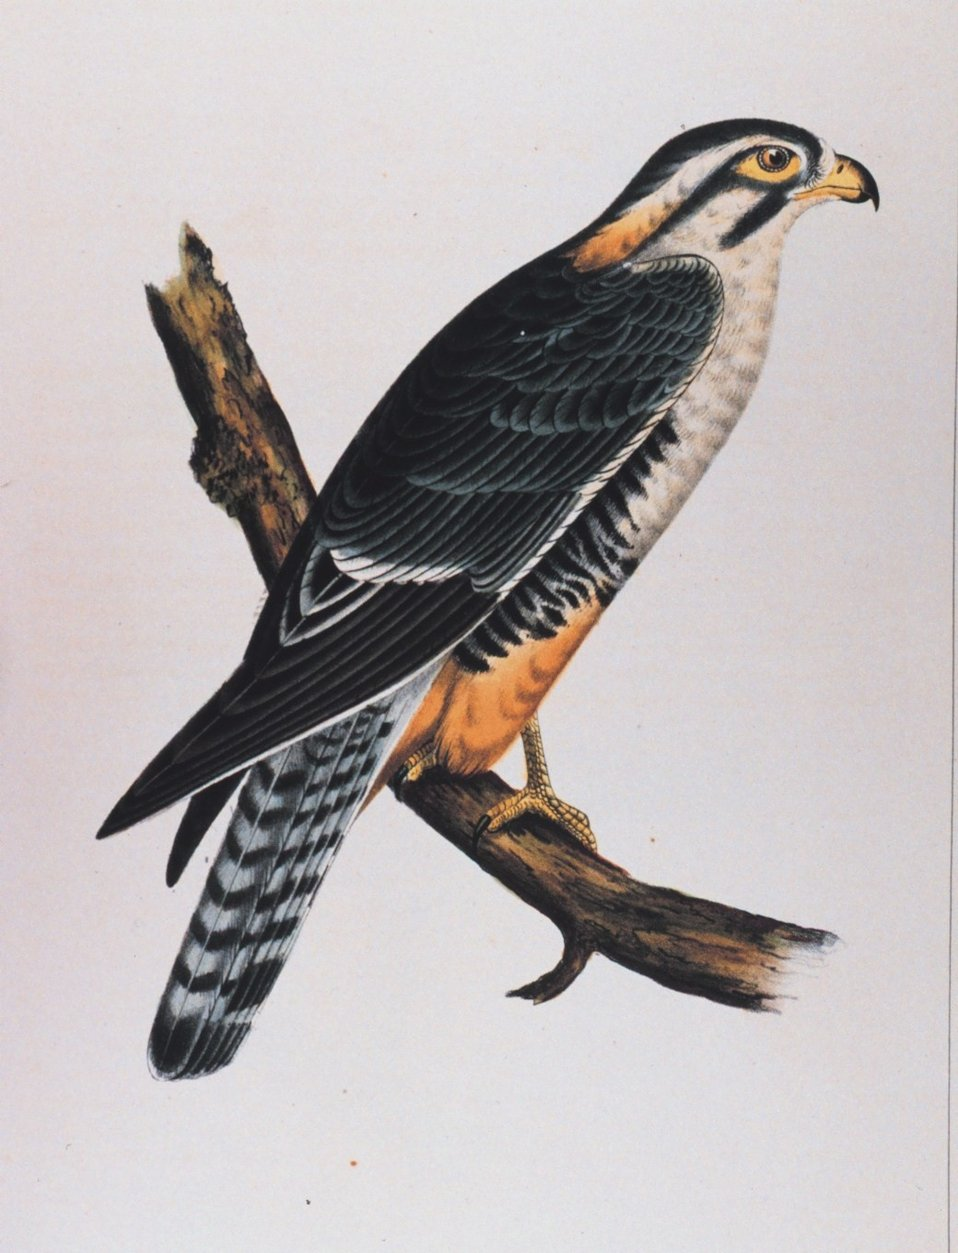 Buteo elegans, Cassin (adult). This image was included in:  Reports of Explorations and  Surveys ....  Volume X. 1859.  Plate I.  P. 20 of U. S. Pacific Railroad Explorations and Surveys 32nd Parallel. Library Call Number F593 .U58 1855.